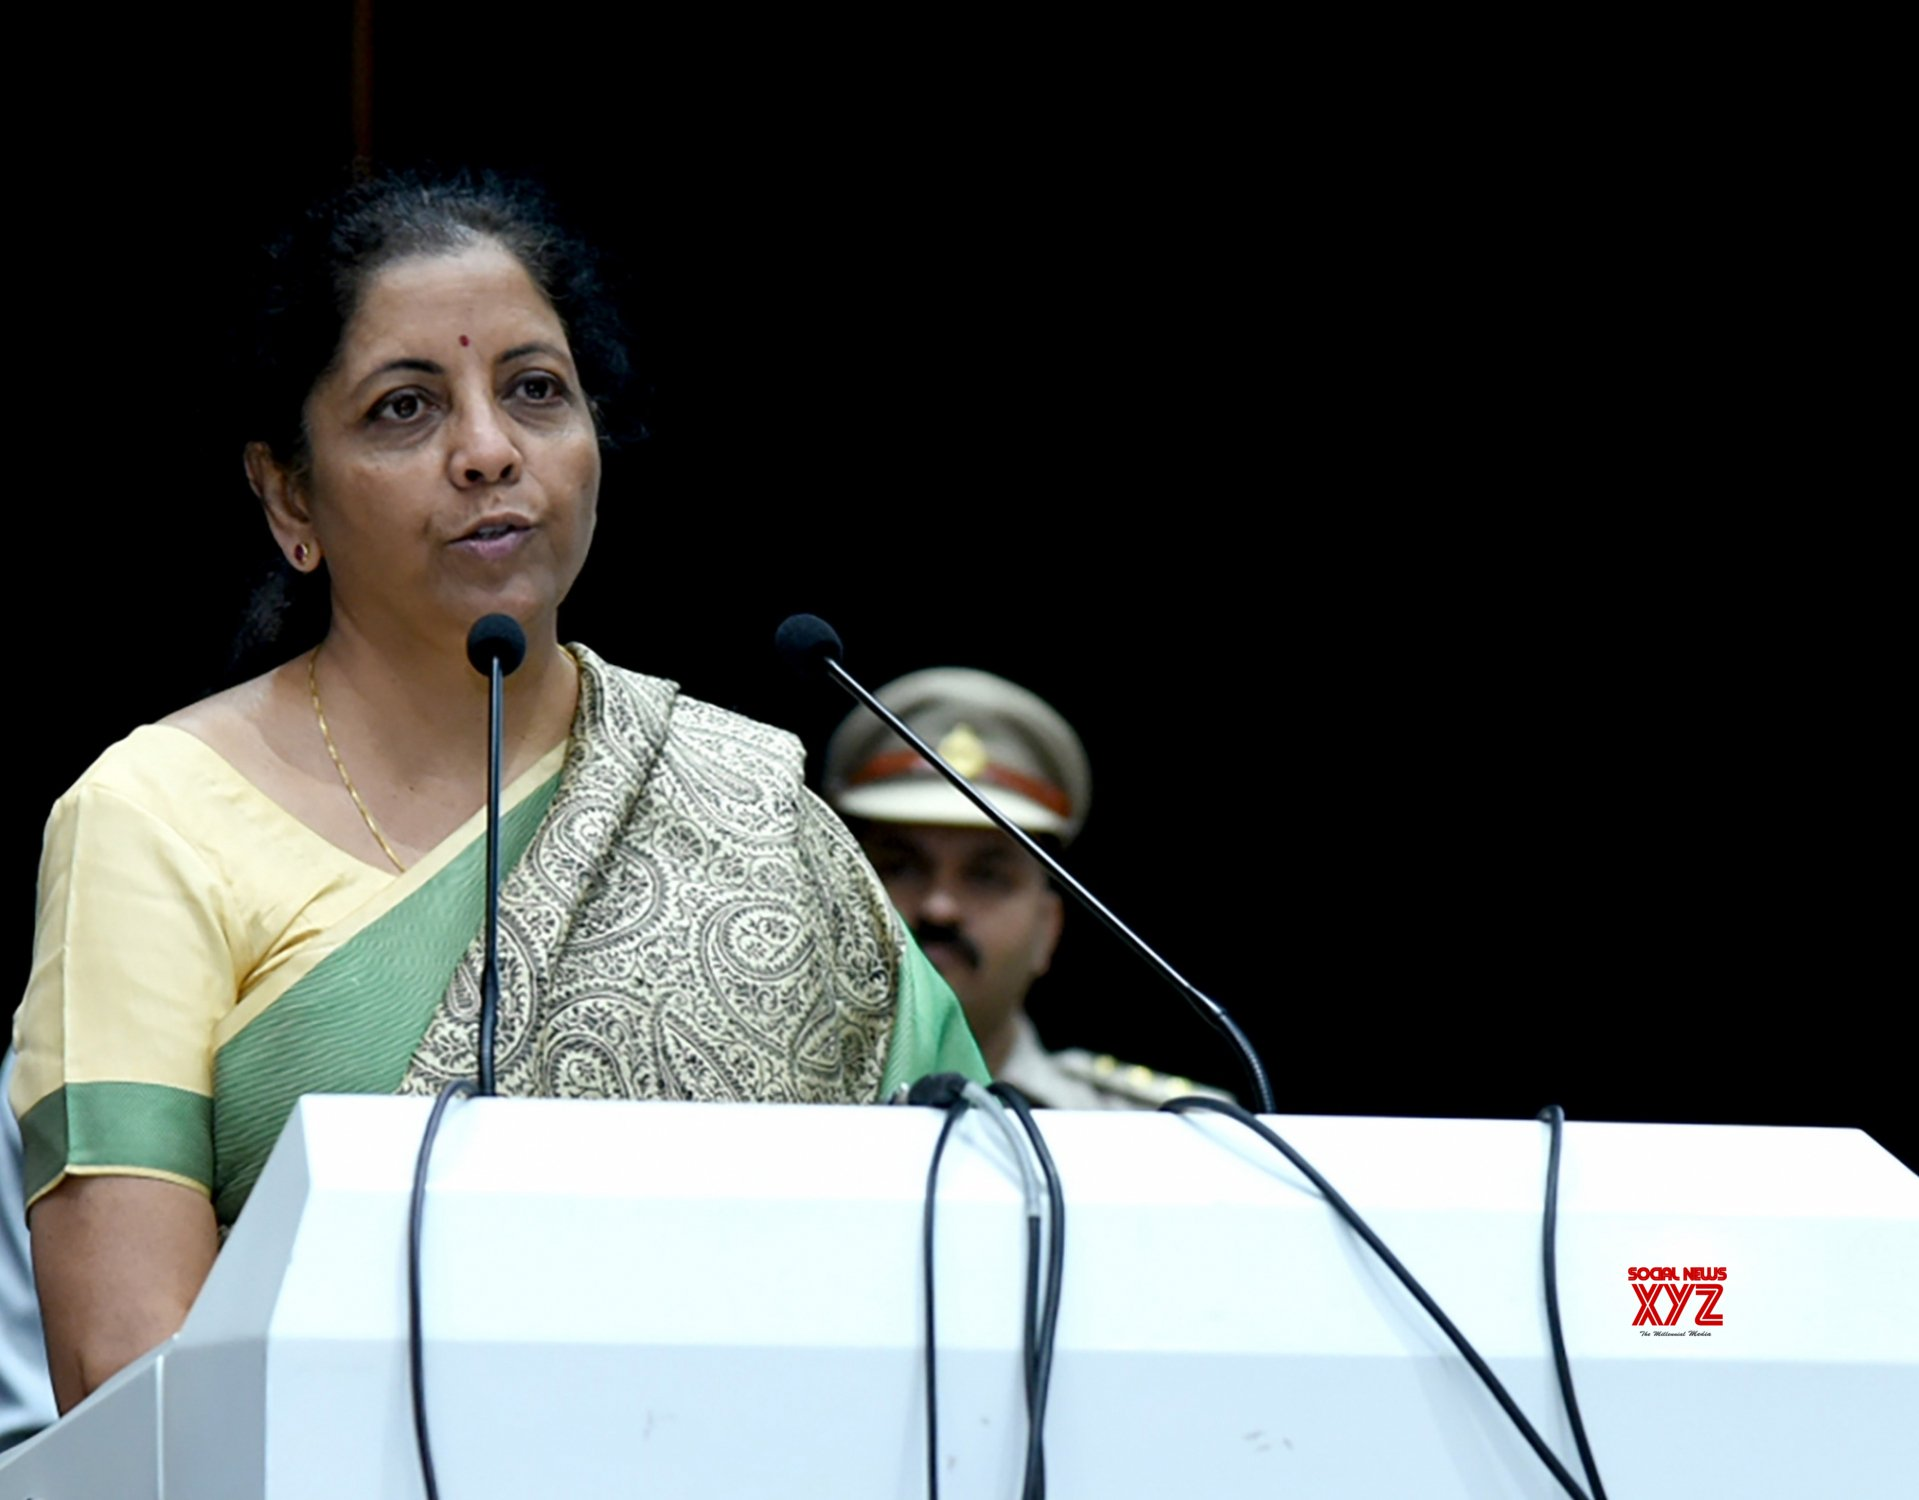 Faridabad: Nirmala Sitharaman at Passing Out Parade Ceremony of 69th Batch of IRS #Gallery